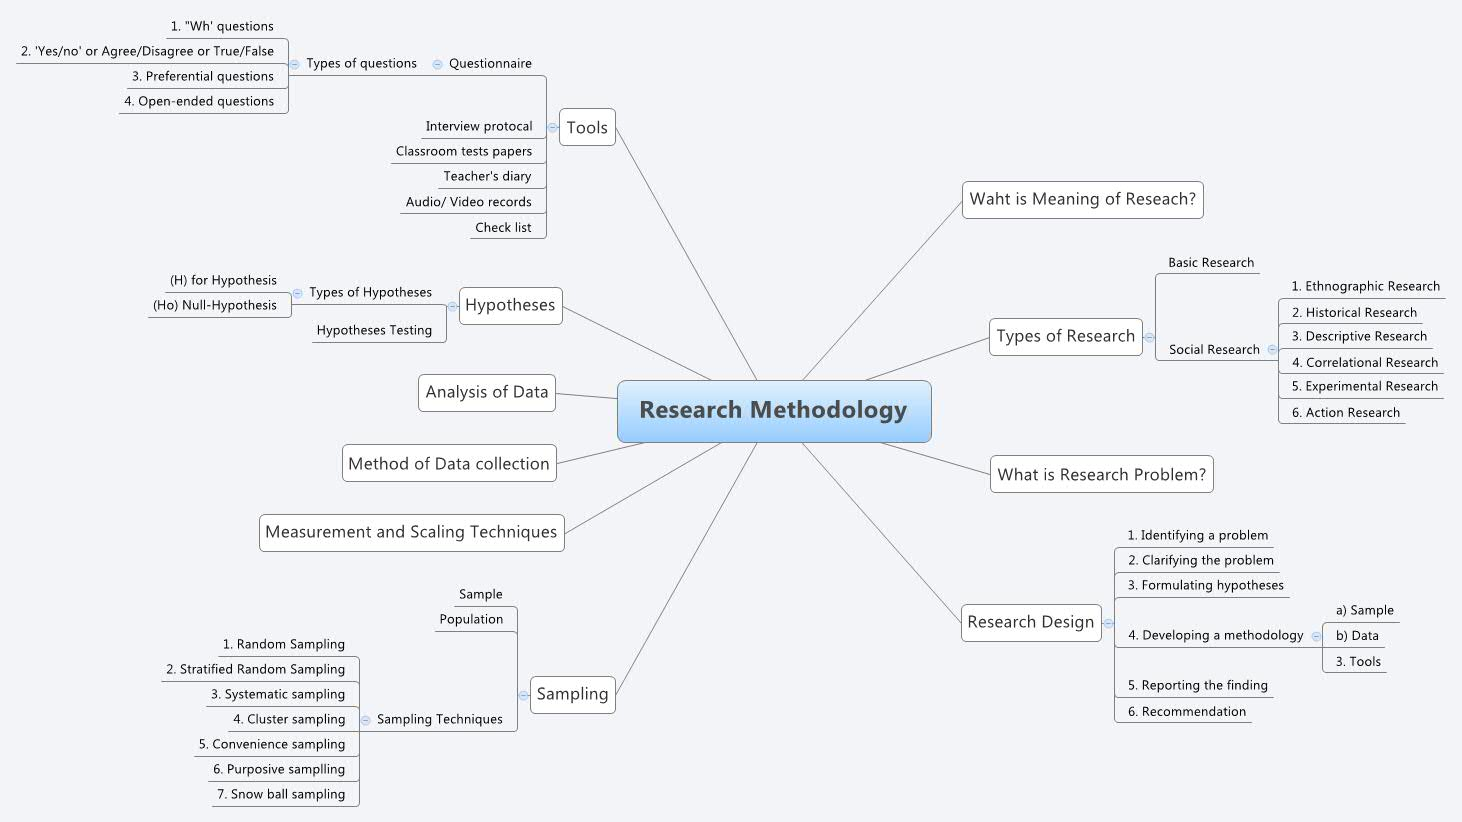 what is the meaning of research methodology